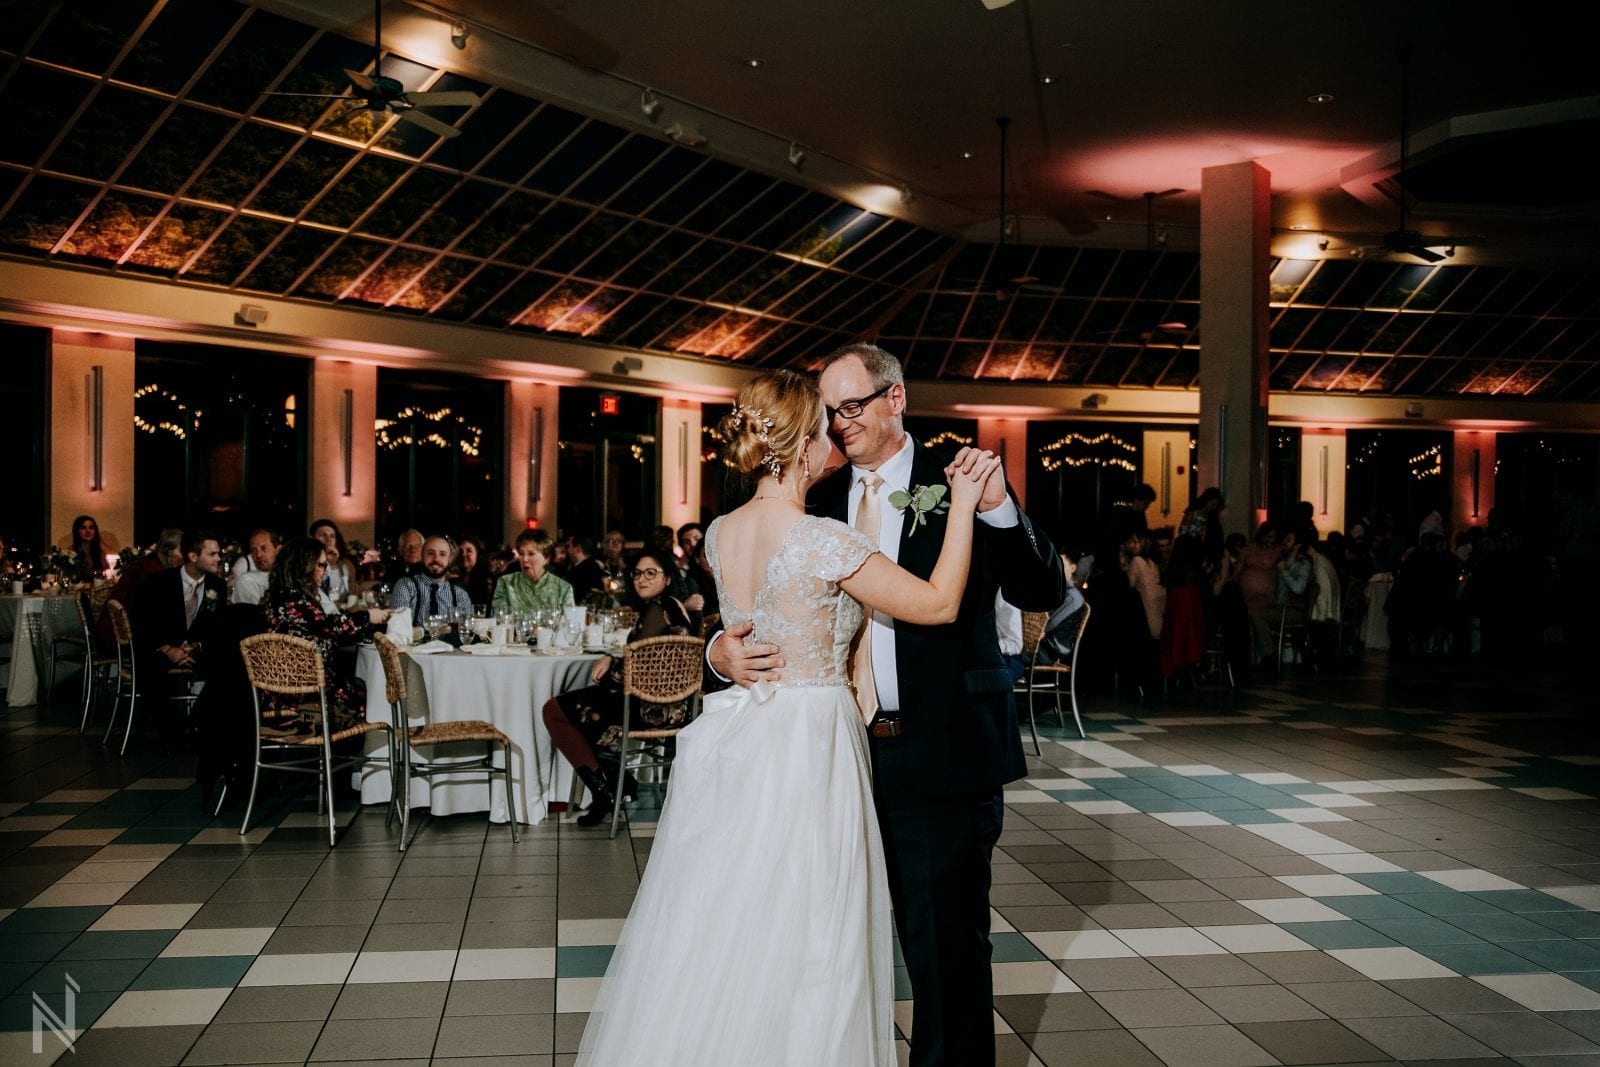 Father of the bride dance at St. Louis Zoo wedding reception photography at Lakeside Cafe